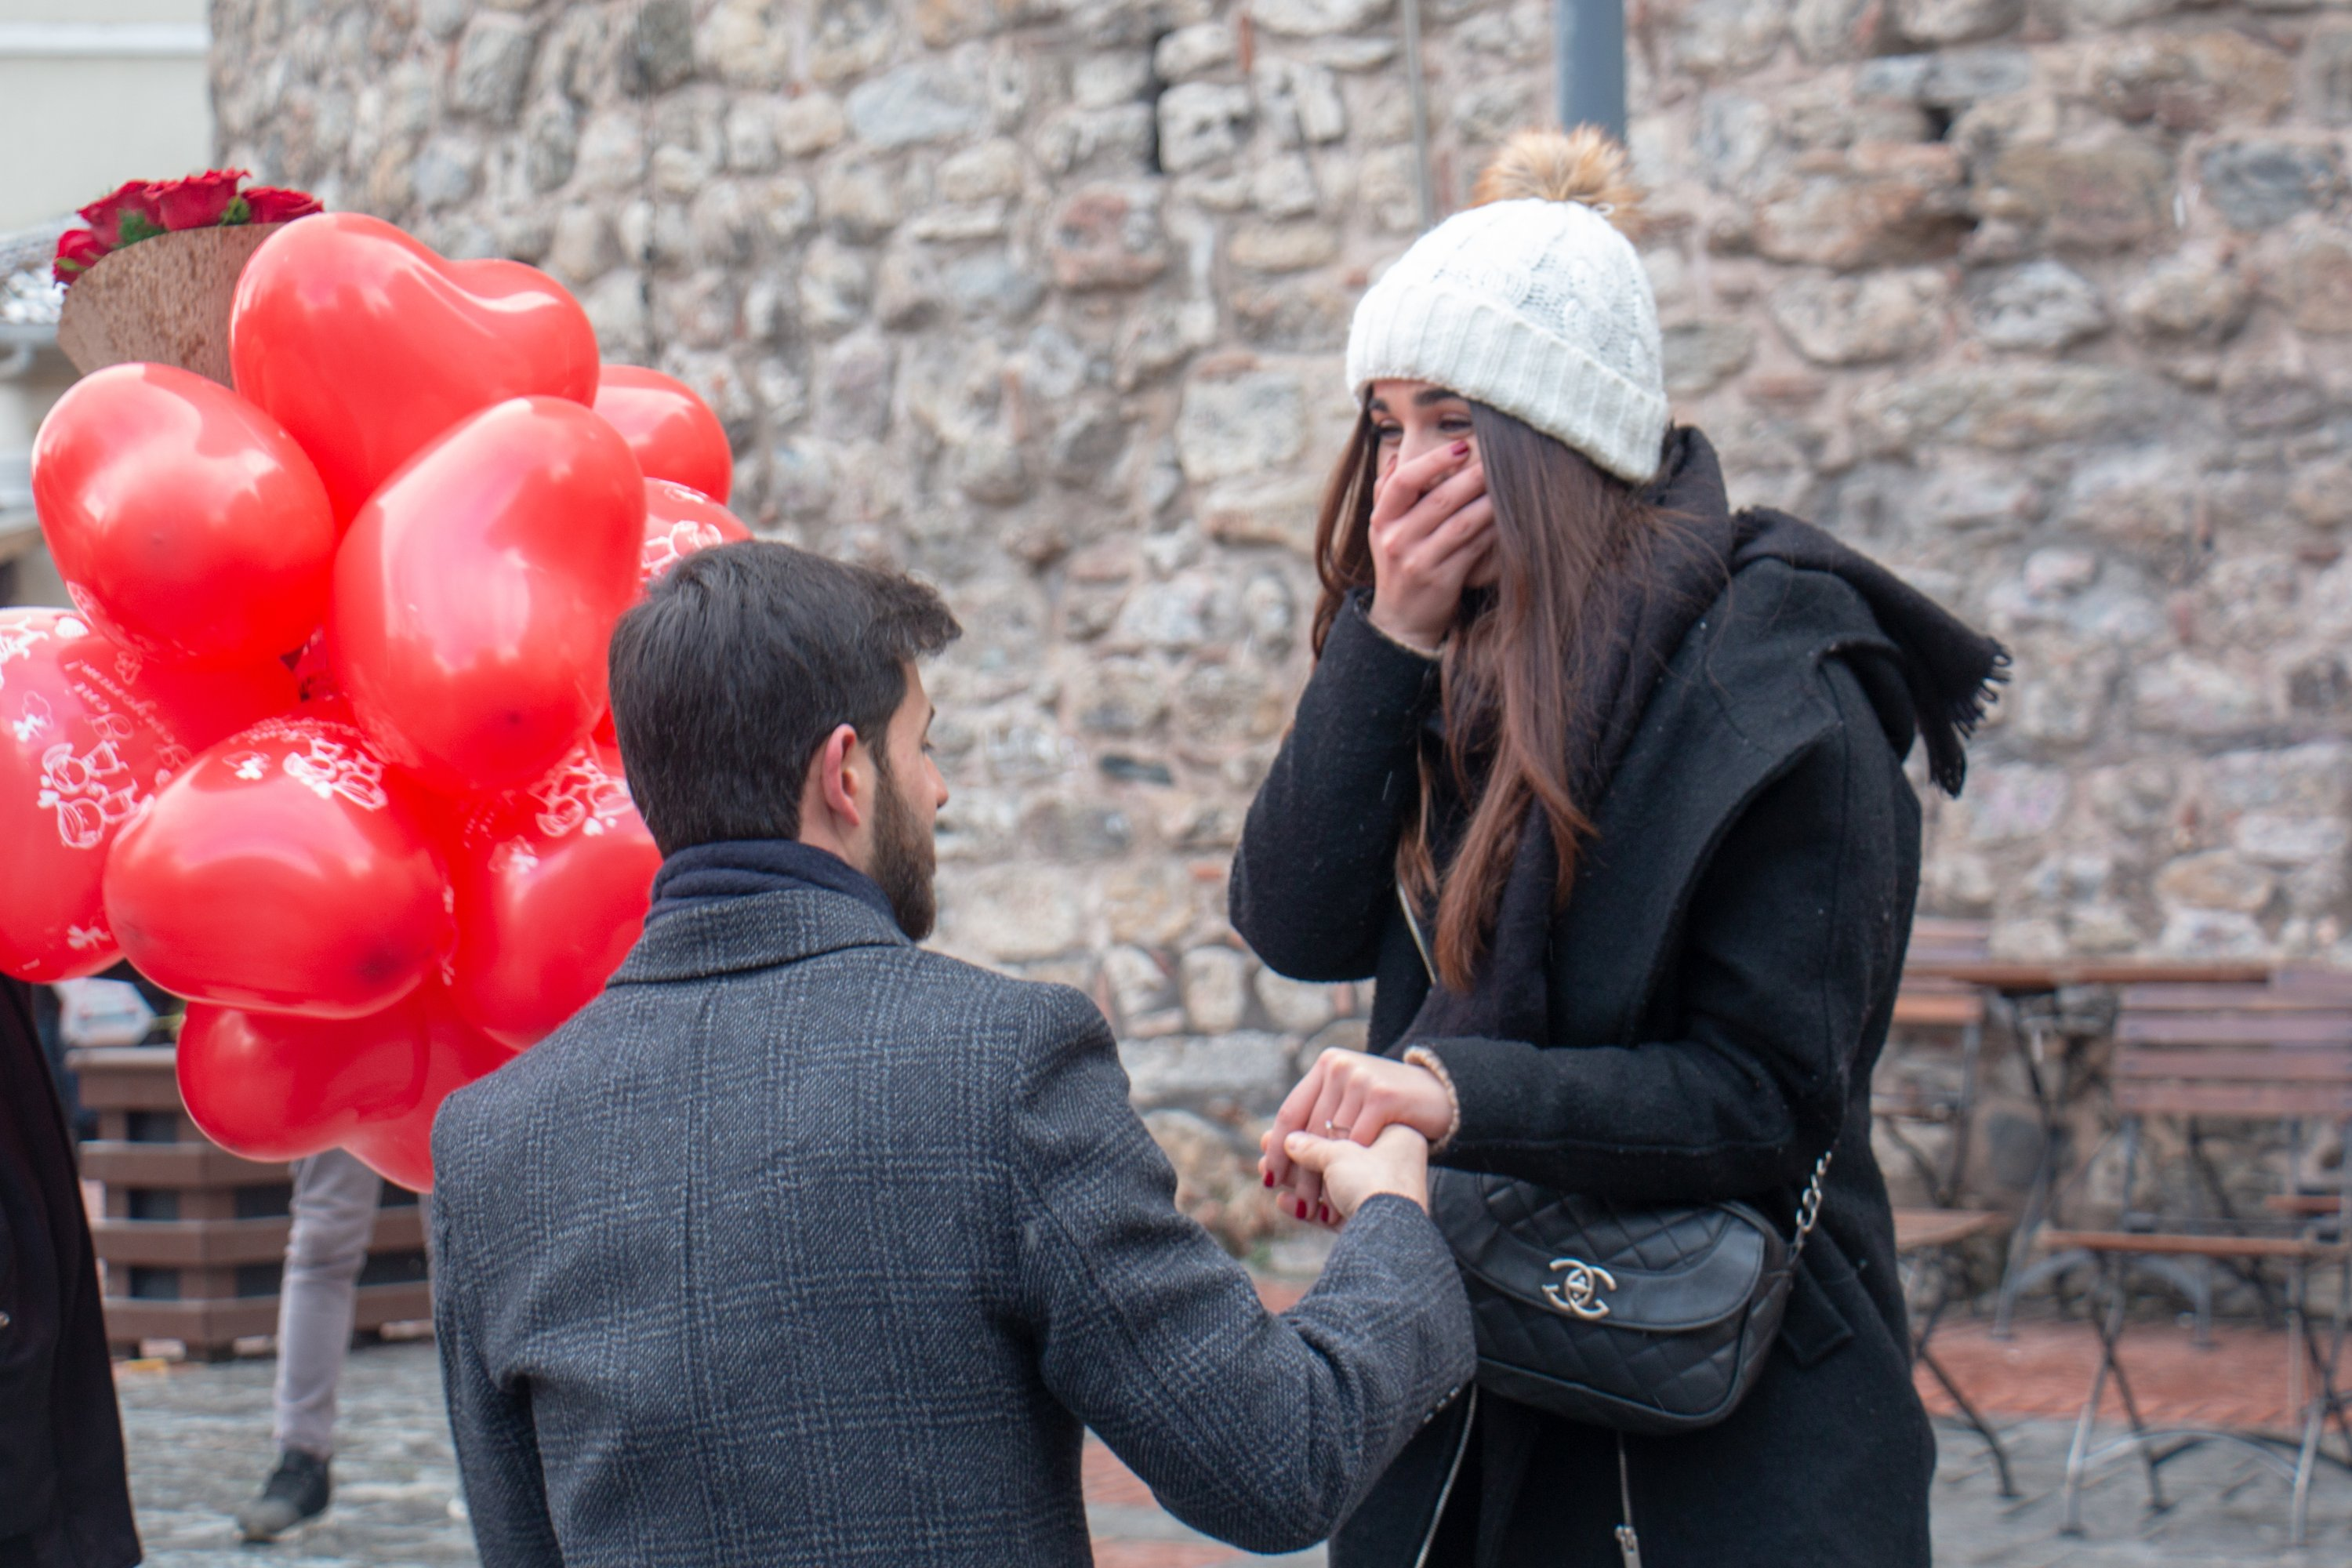 A man proposing to a woman next to Istanbul's Galata Tower. (Shutterstock Photo)